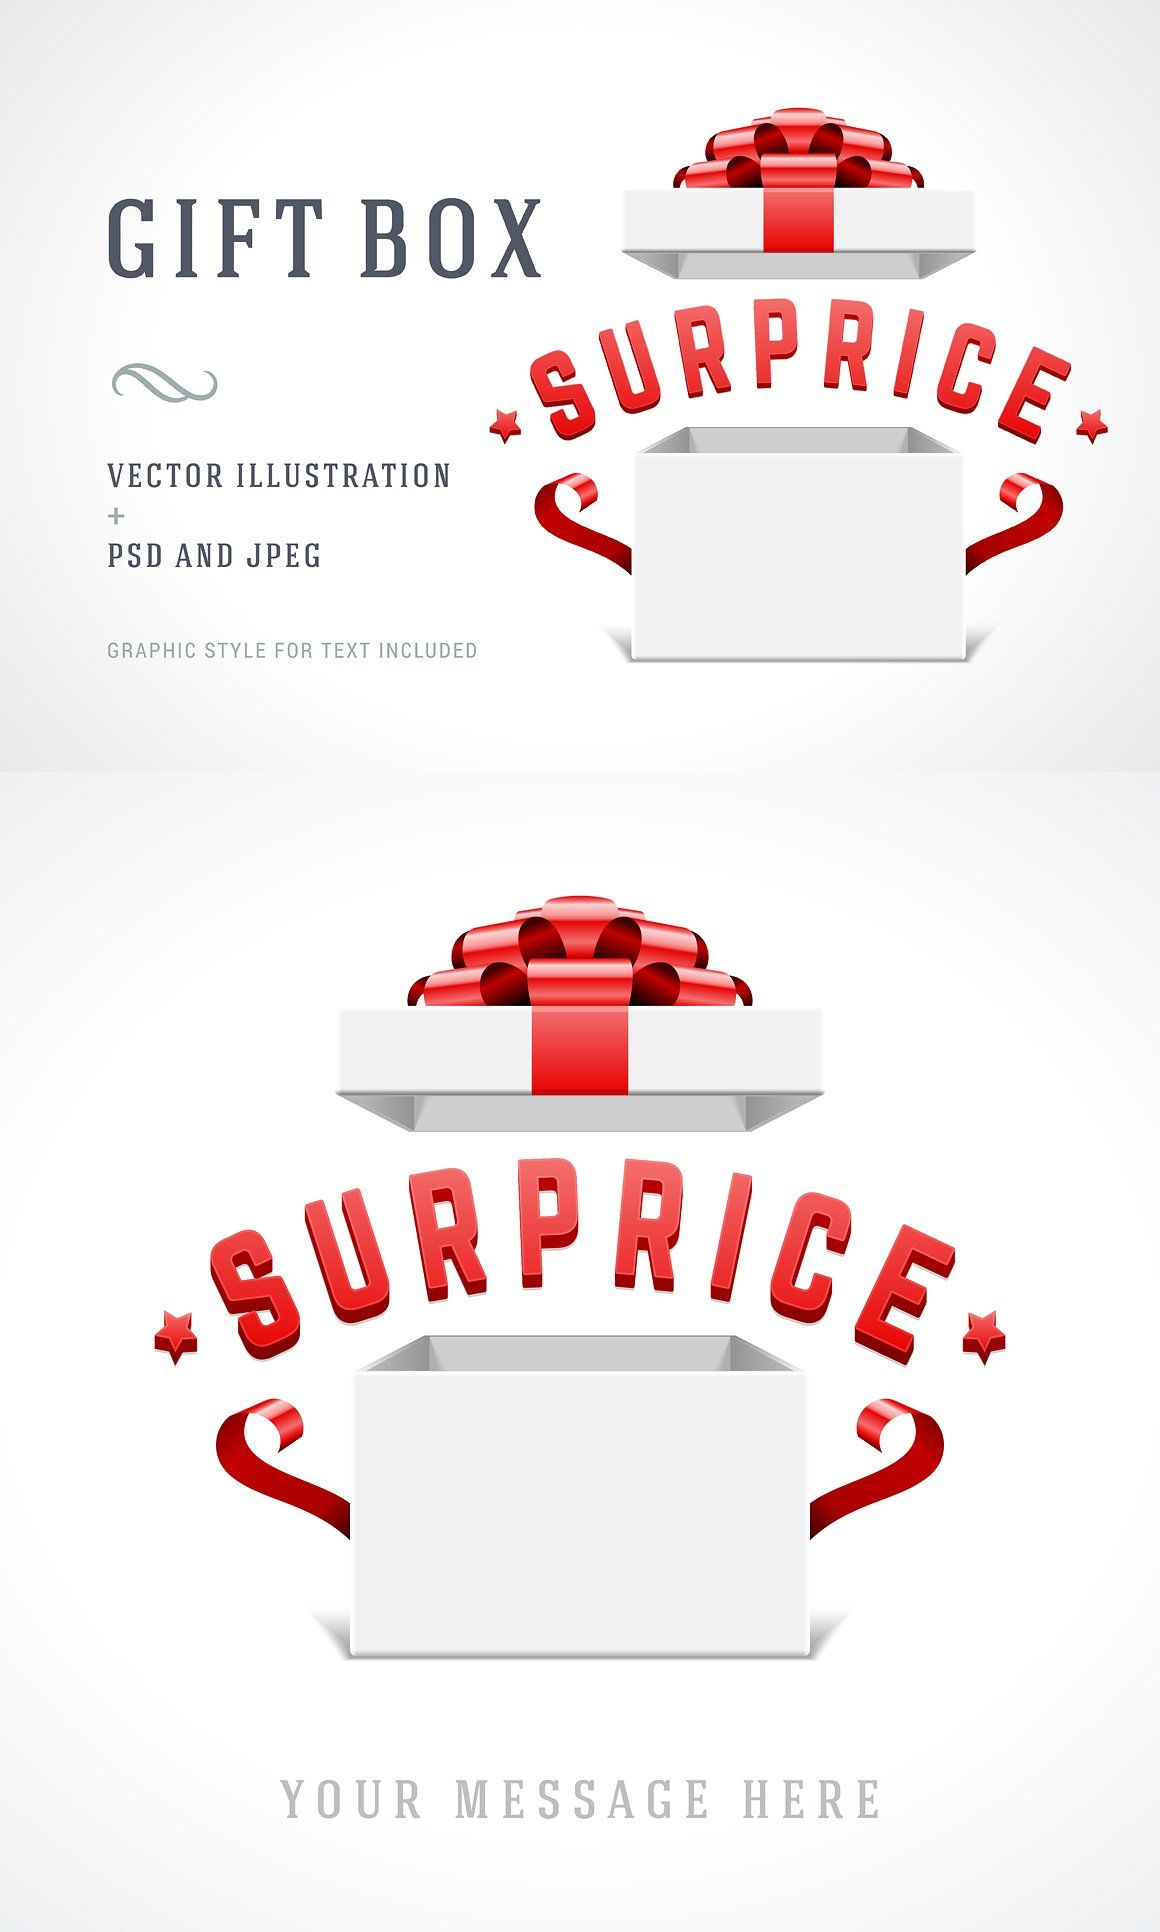 Gift box illustration VectorZoomFeaturesPSD Gift box